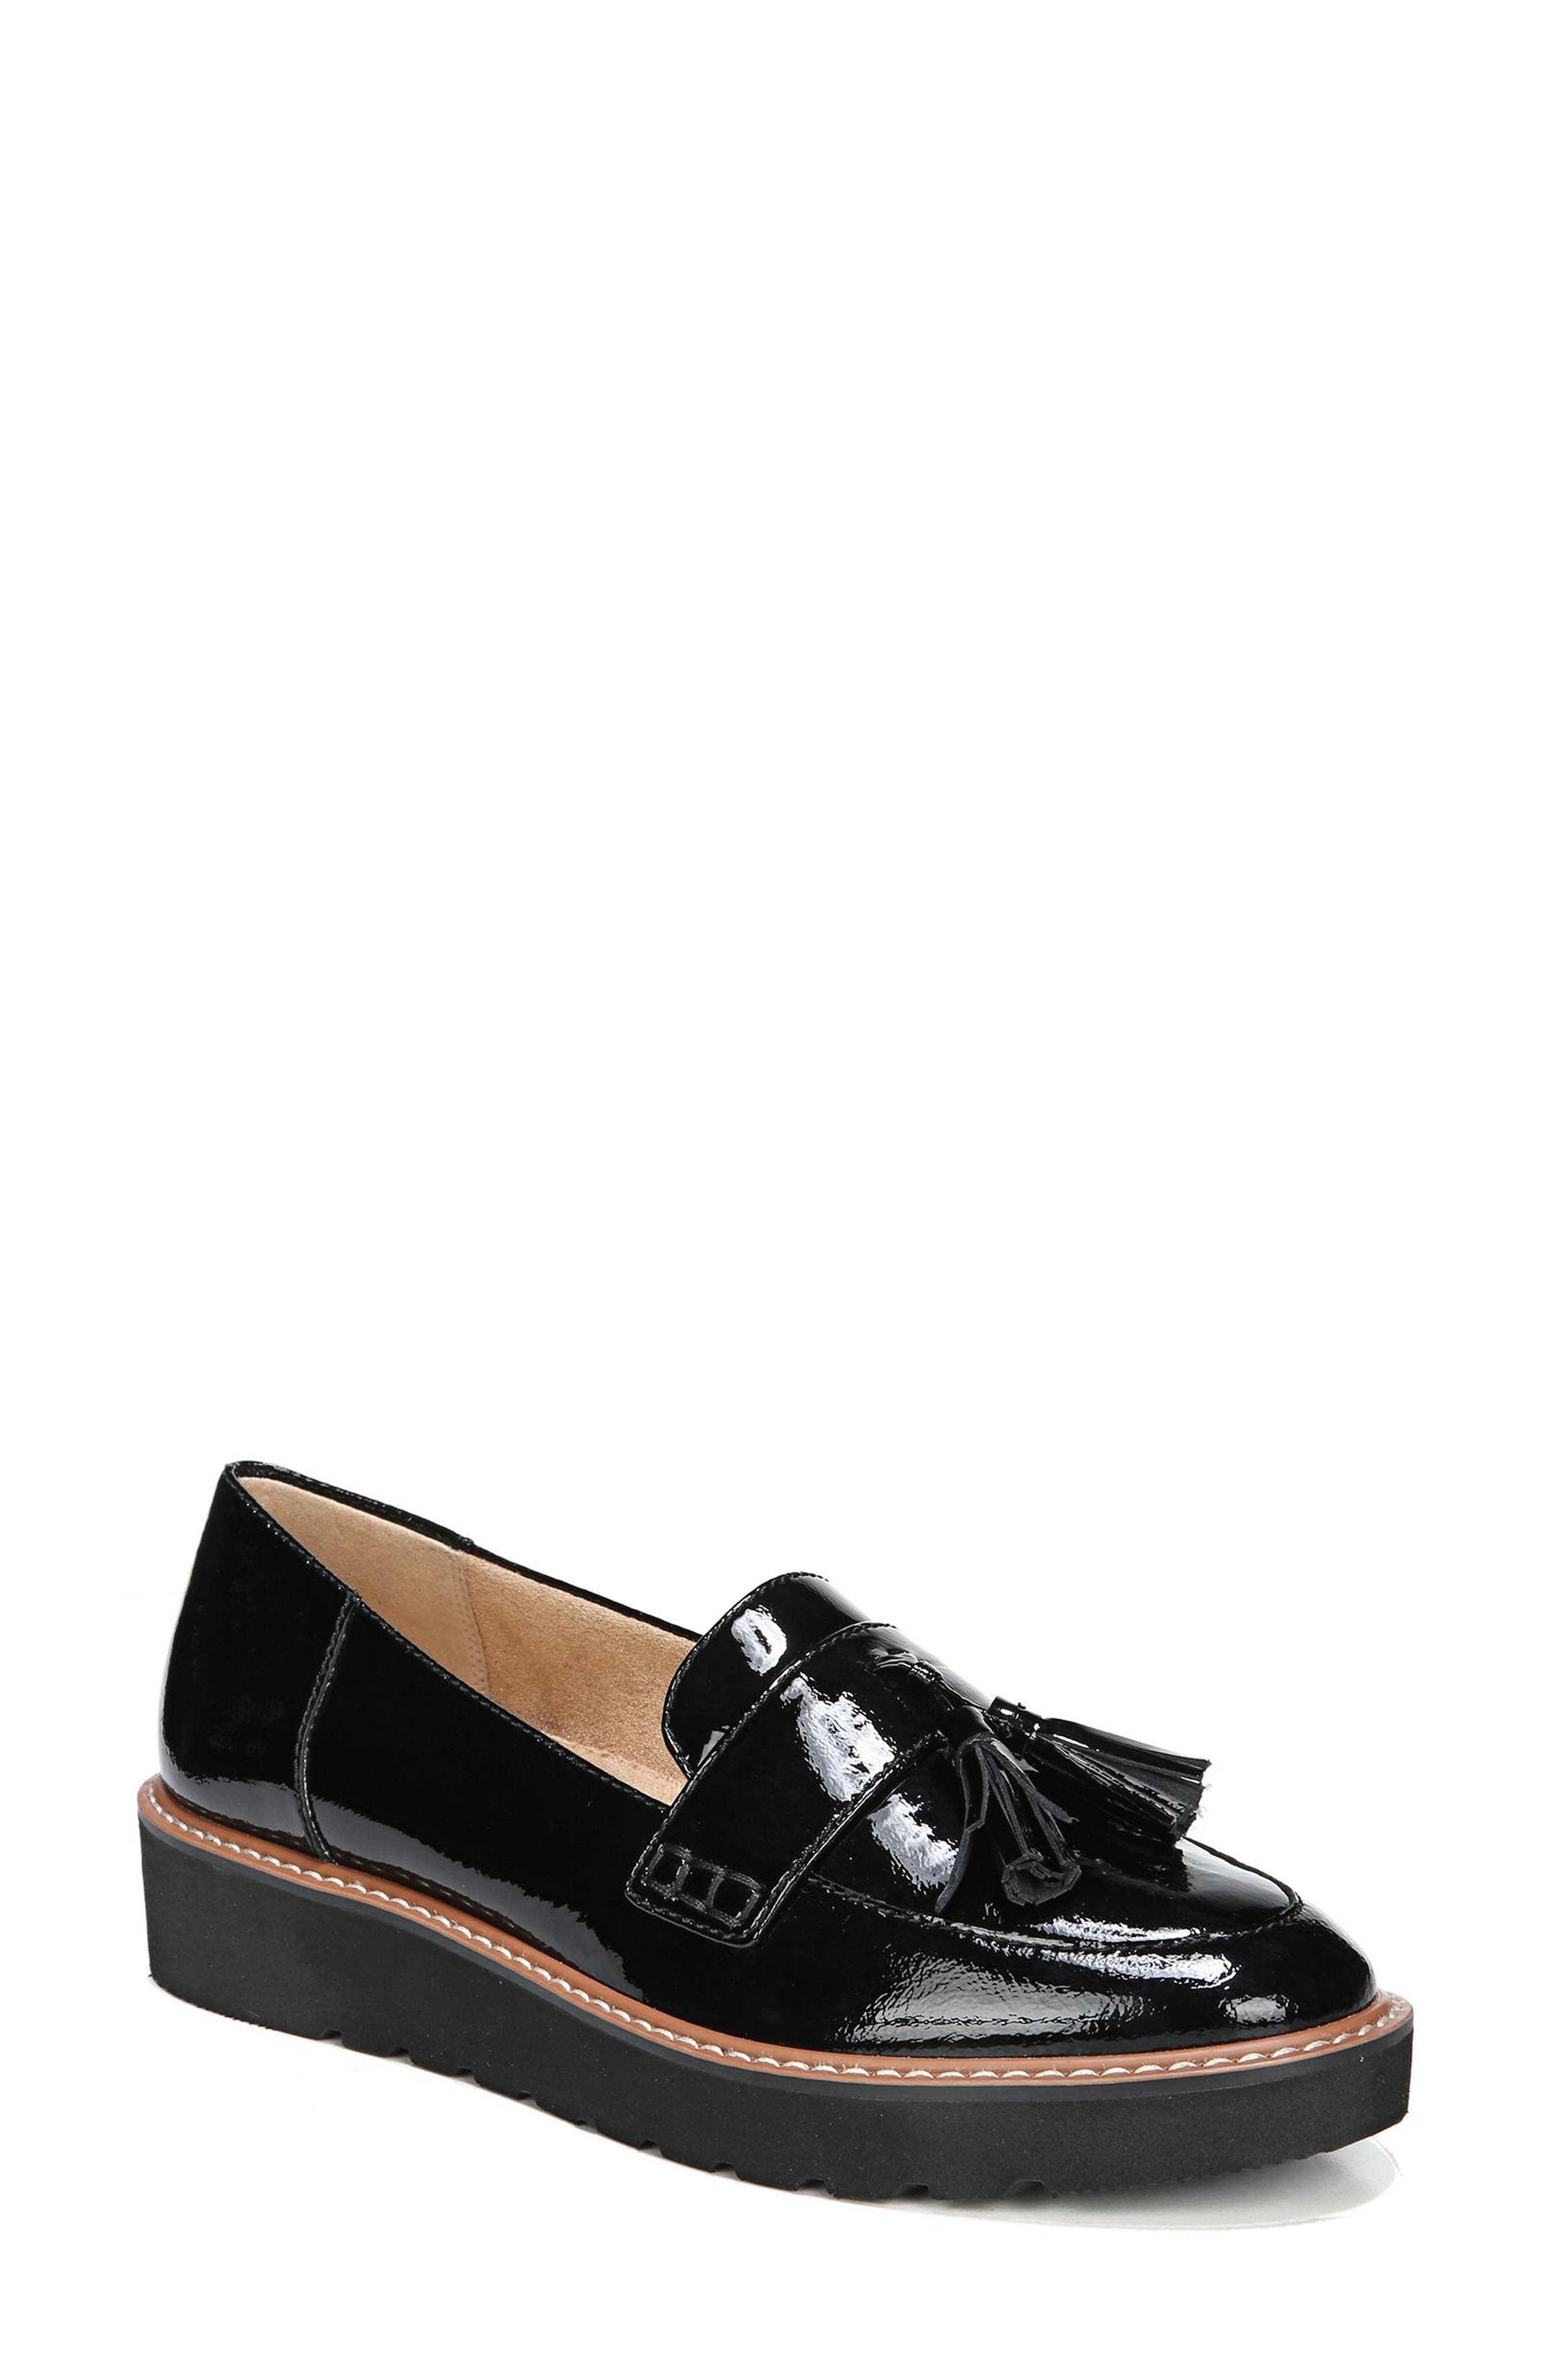 August Loafer,                         Main,                         color, BLACK PATENT LEATHER